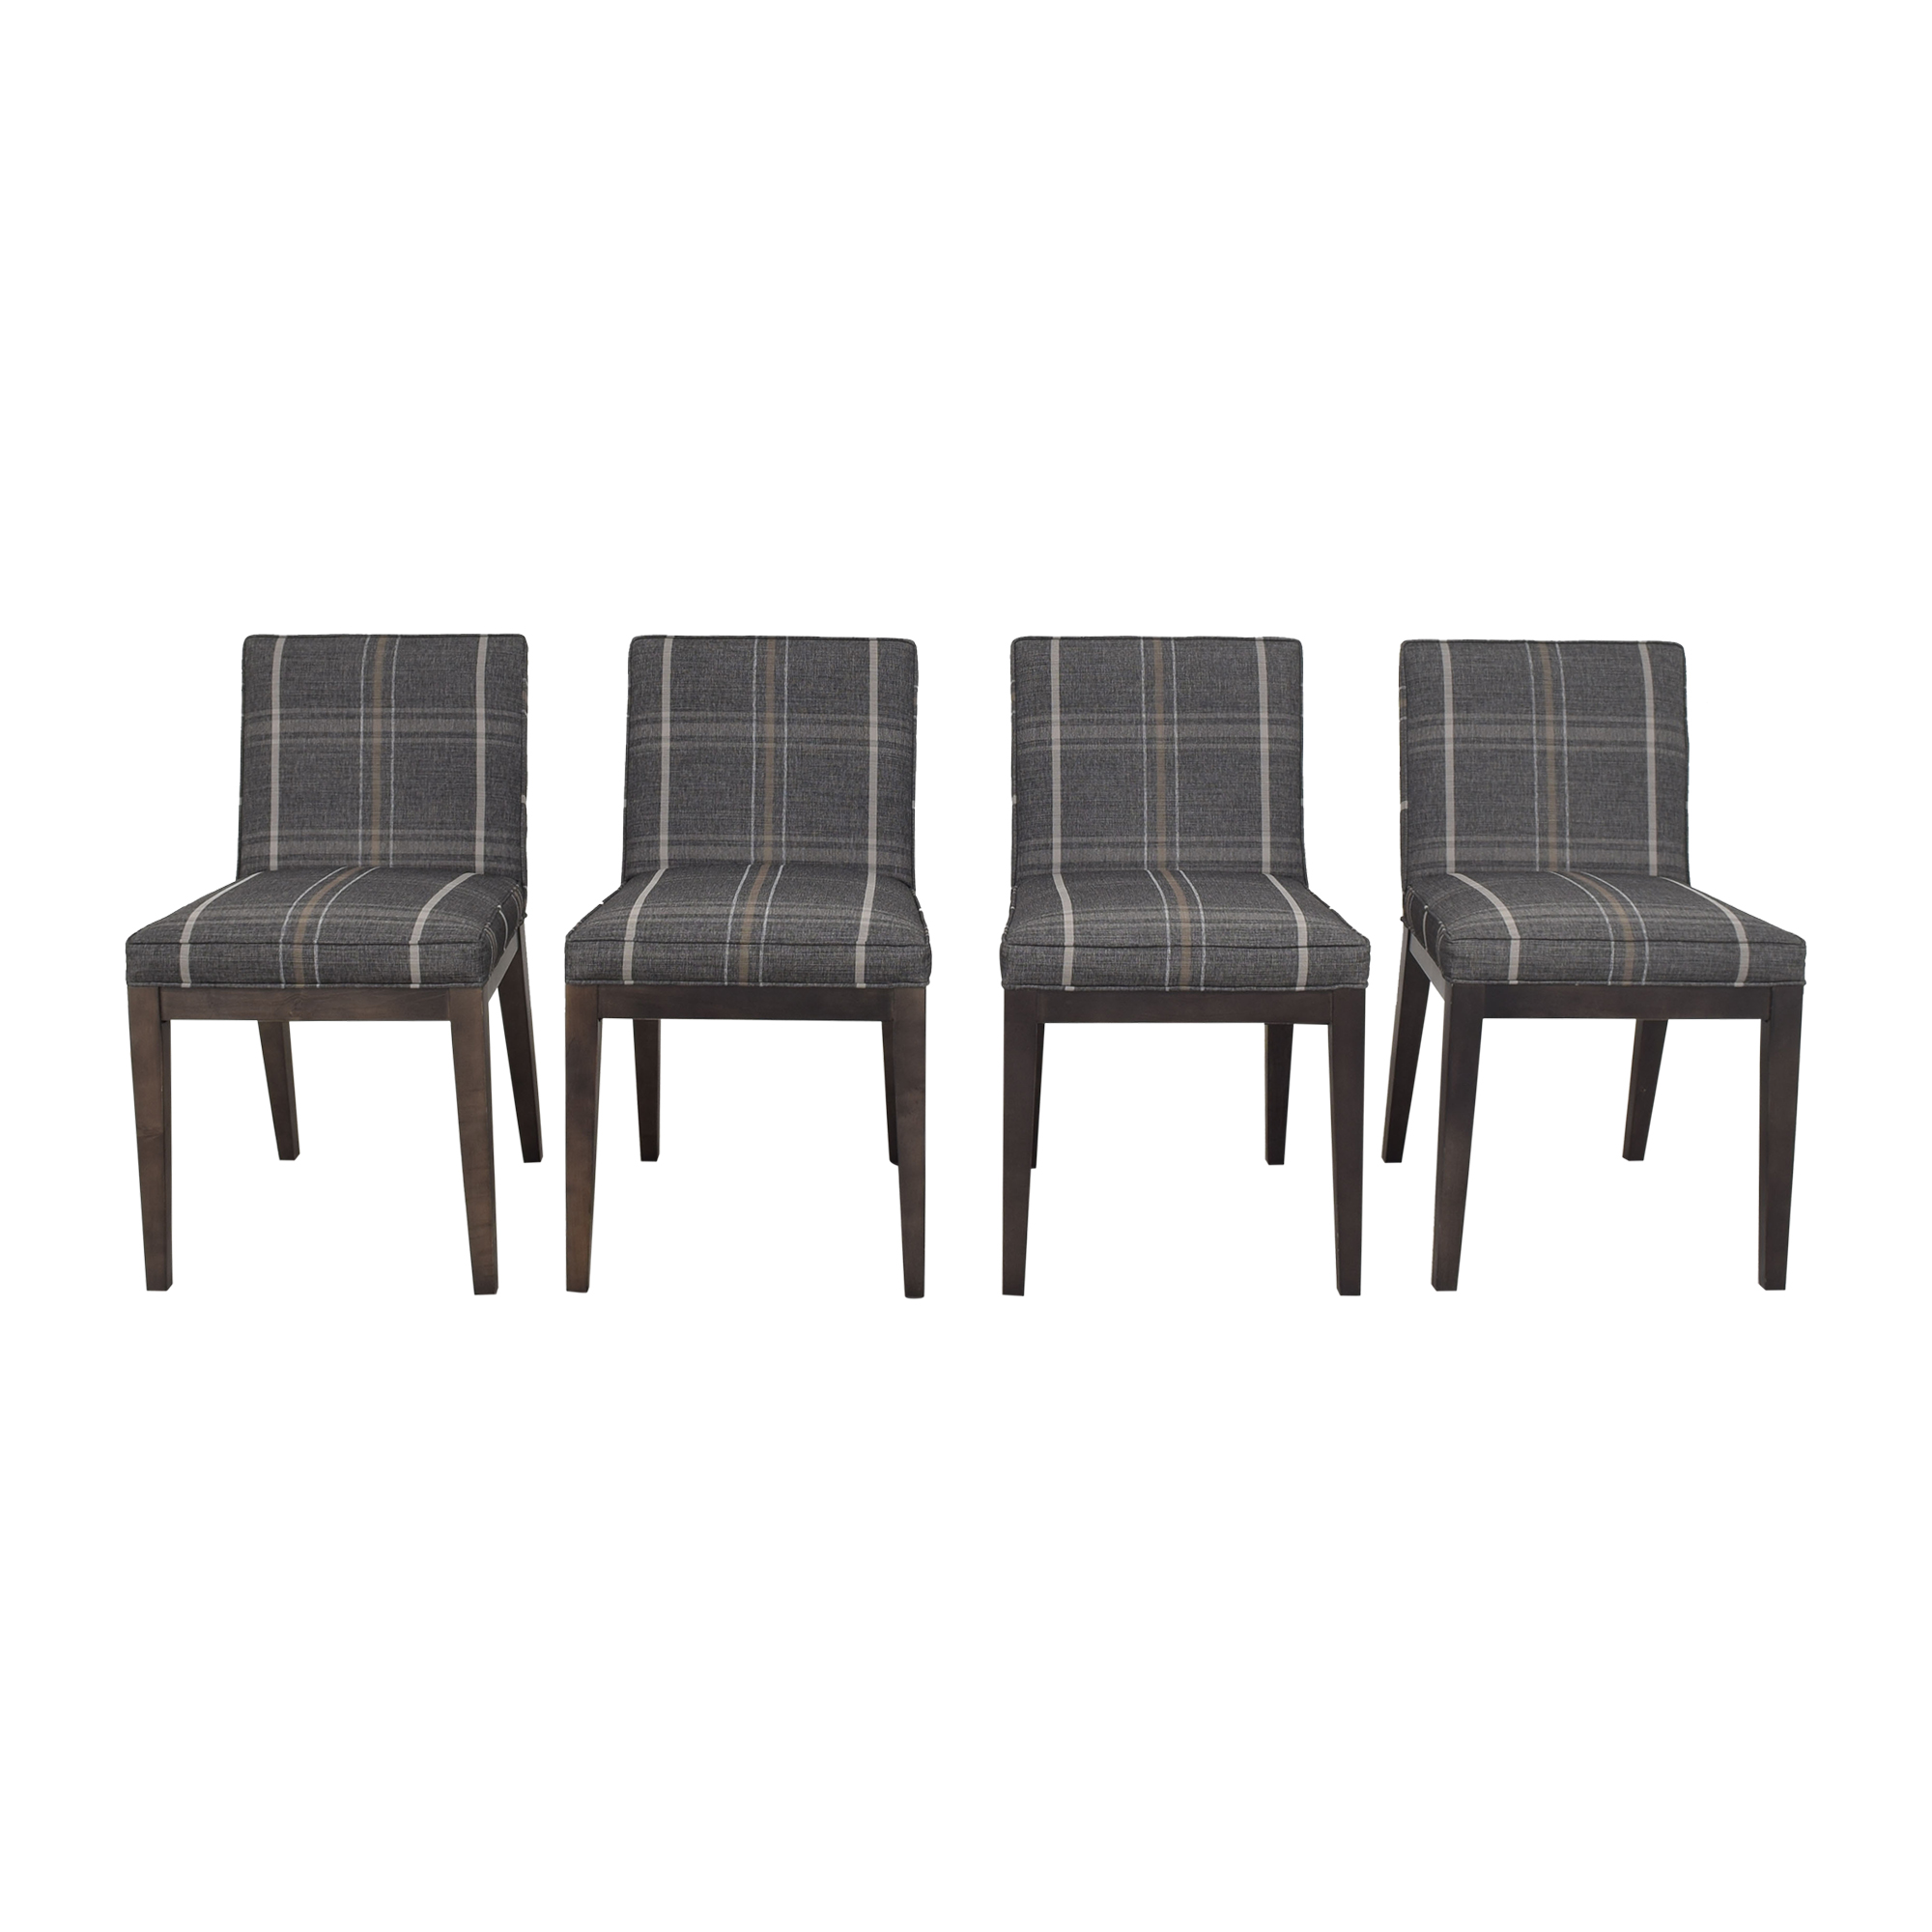 Room & Board Room & Board Ansel Plaid Dining Chairs discount